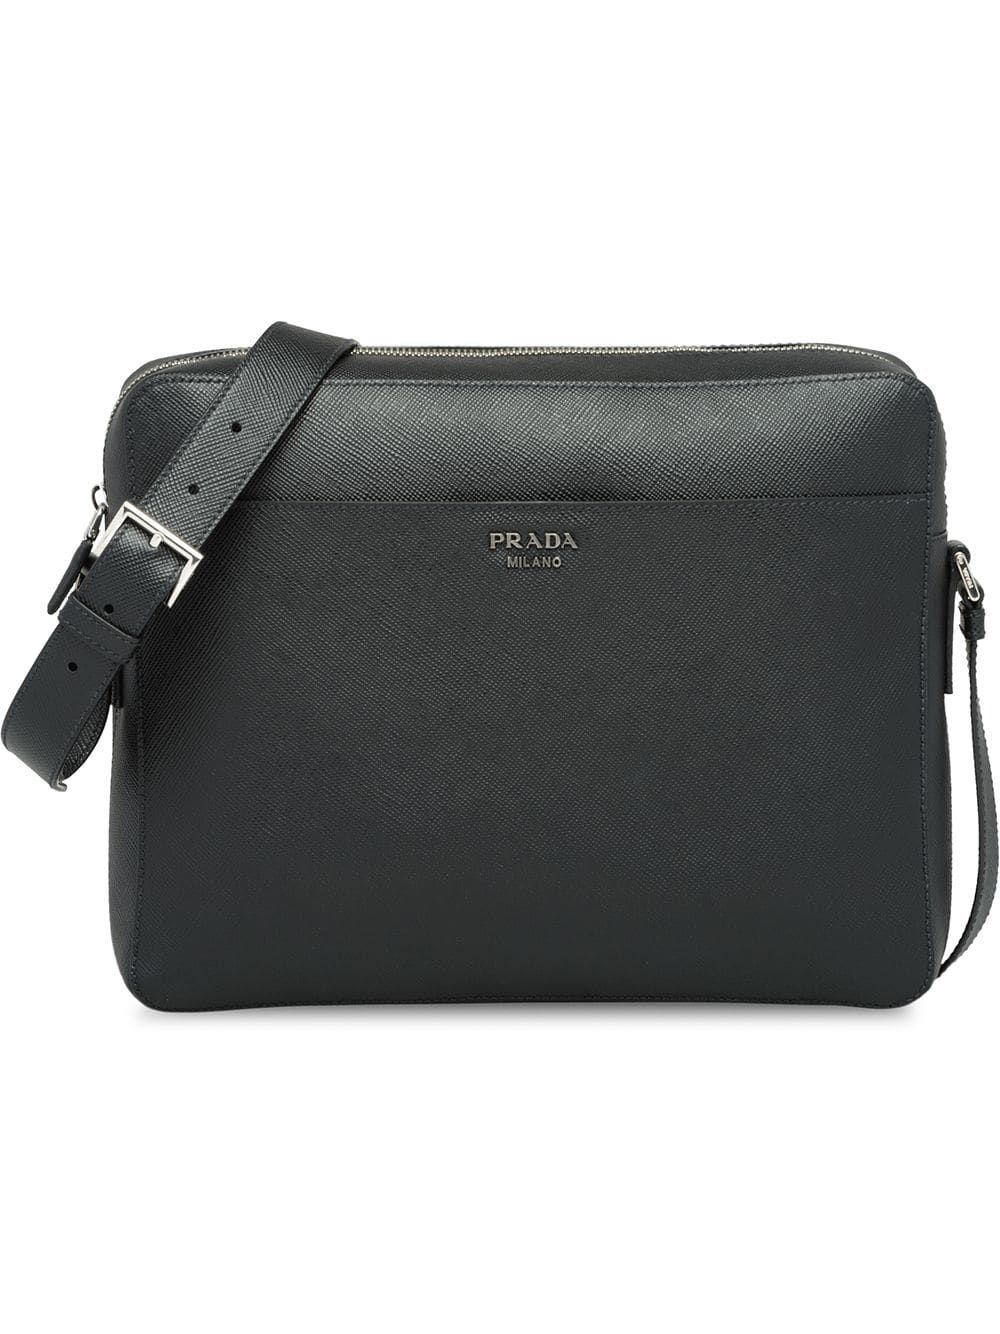 8640ccf384e2 PRADA PRADA SAFFIANO LEATHER SHOULDER BAG - BLACK.  prada  bags  shoulder  bags  leather